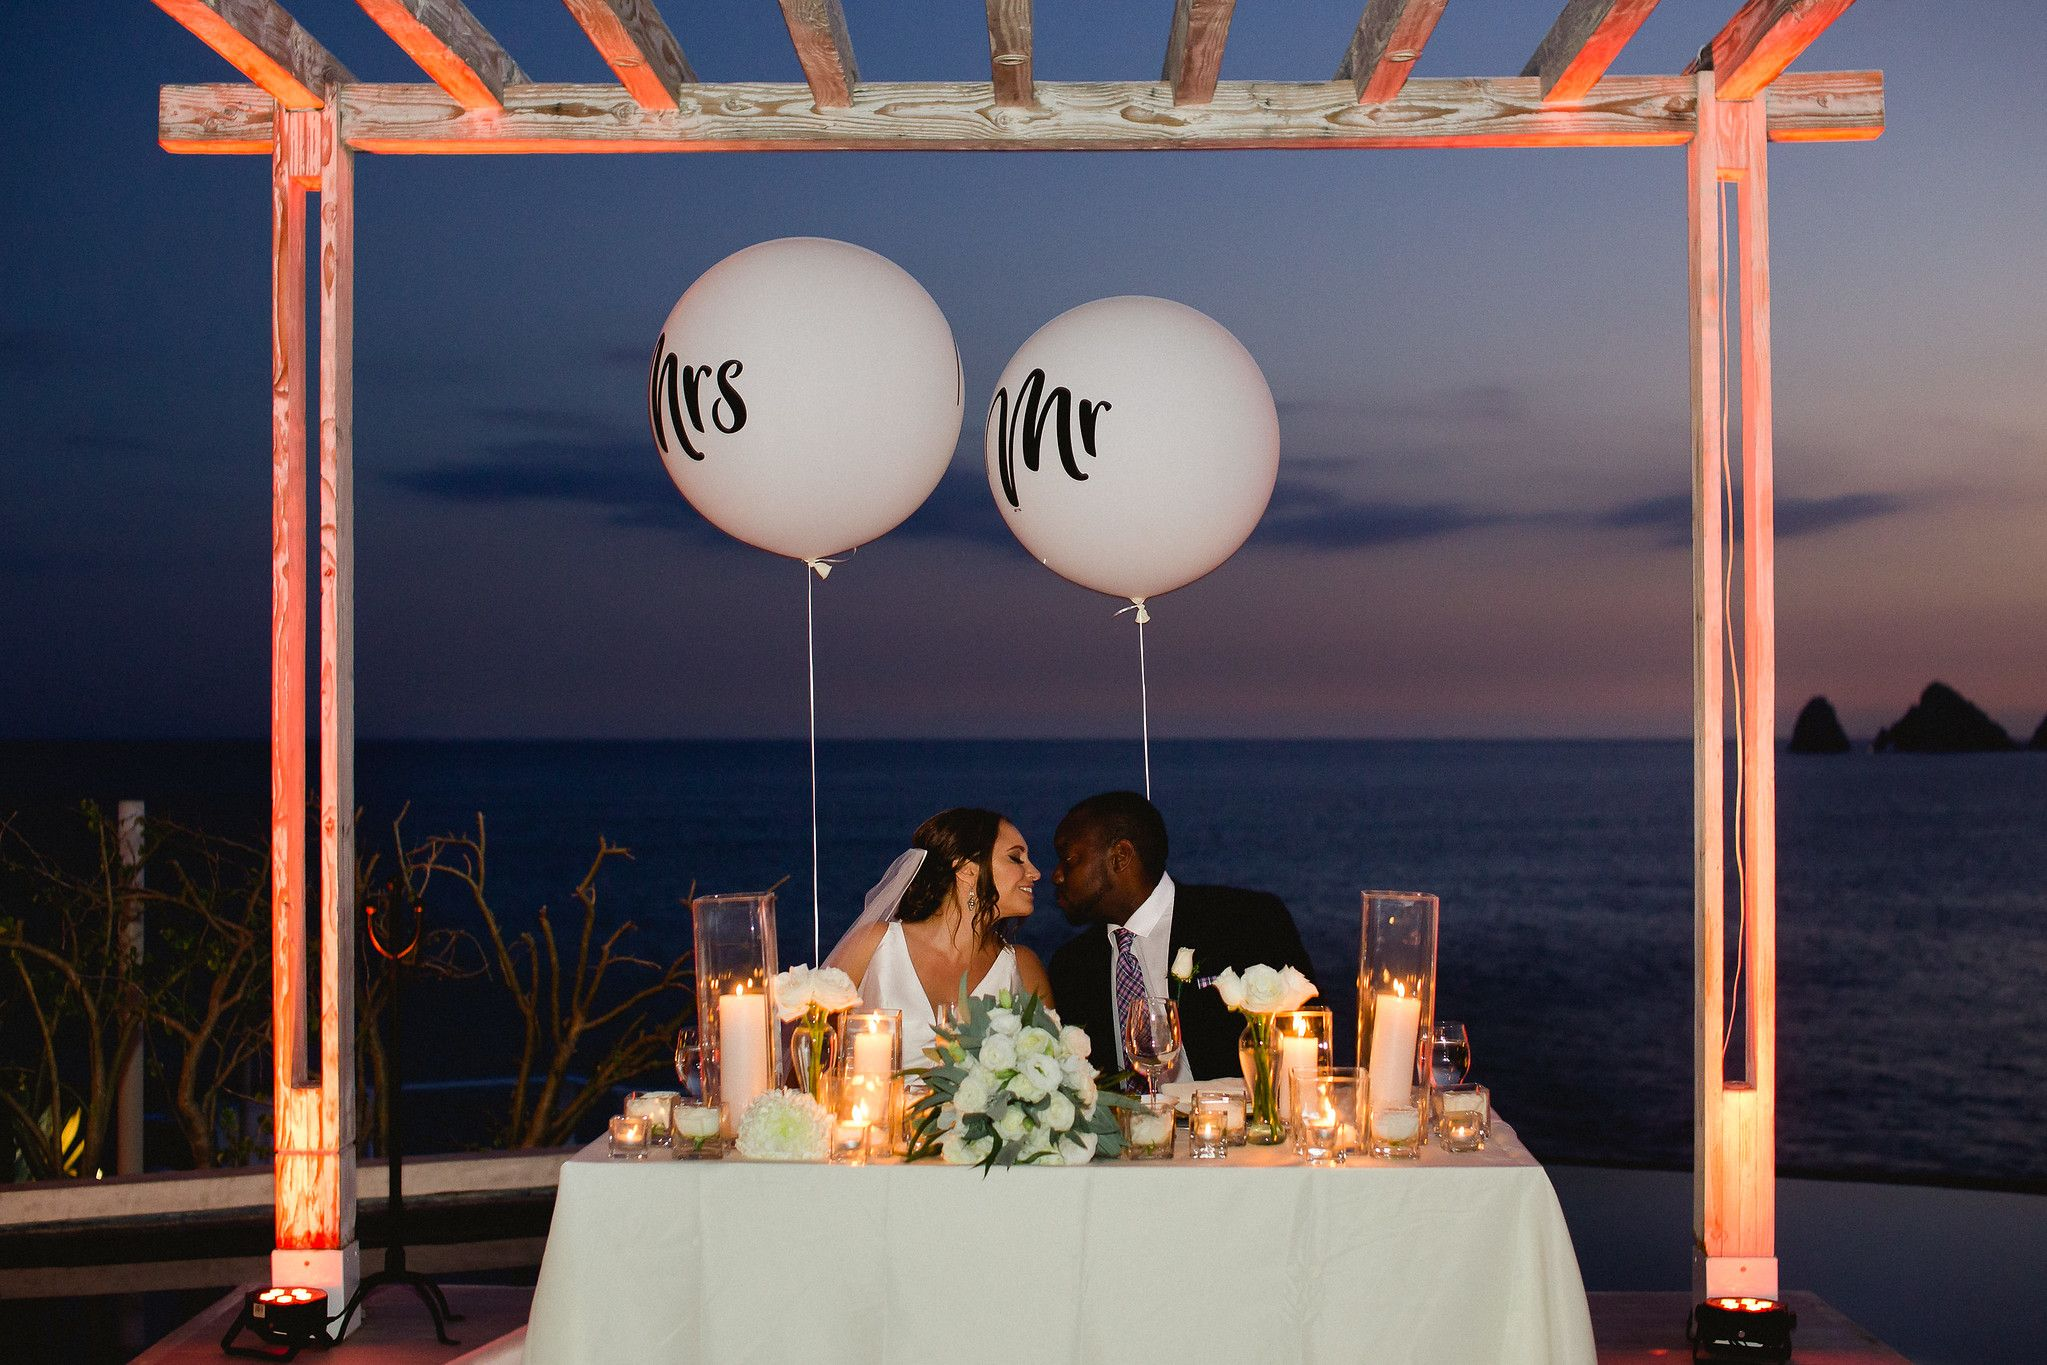 Bride and Groom at their sweetheart table at famous wedding venue in Cabo San Lucas, Mexico. Wedding planning and design by Cabo Wedding Services